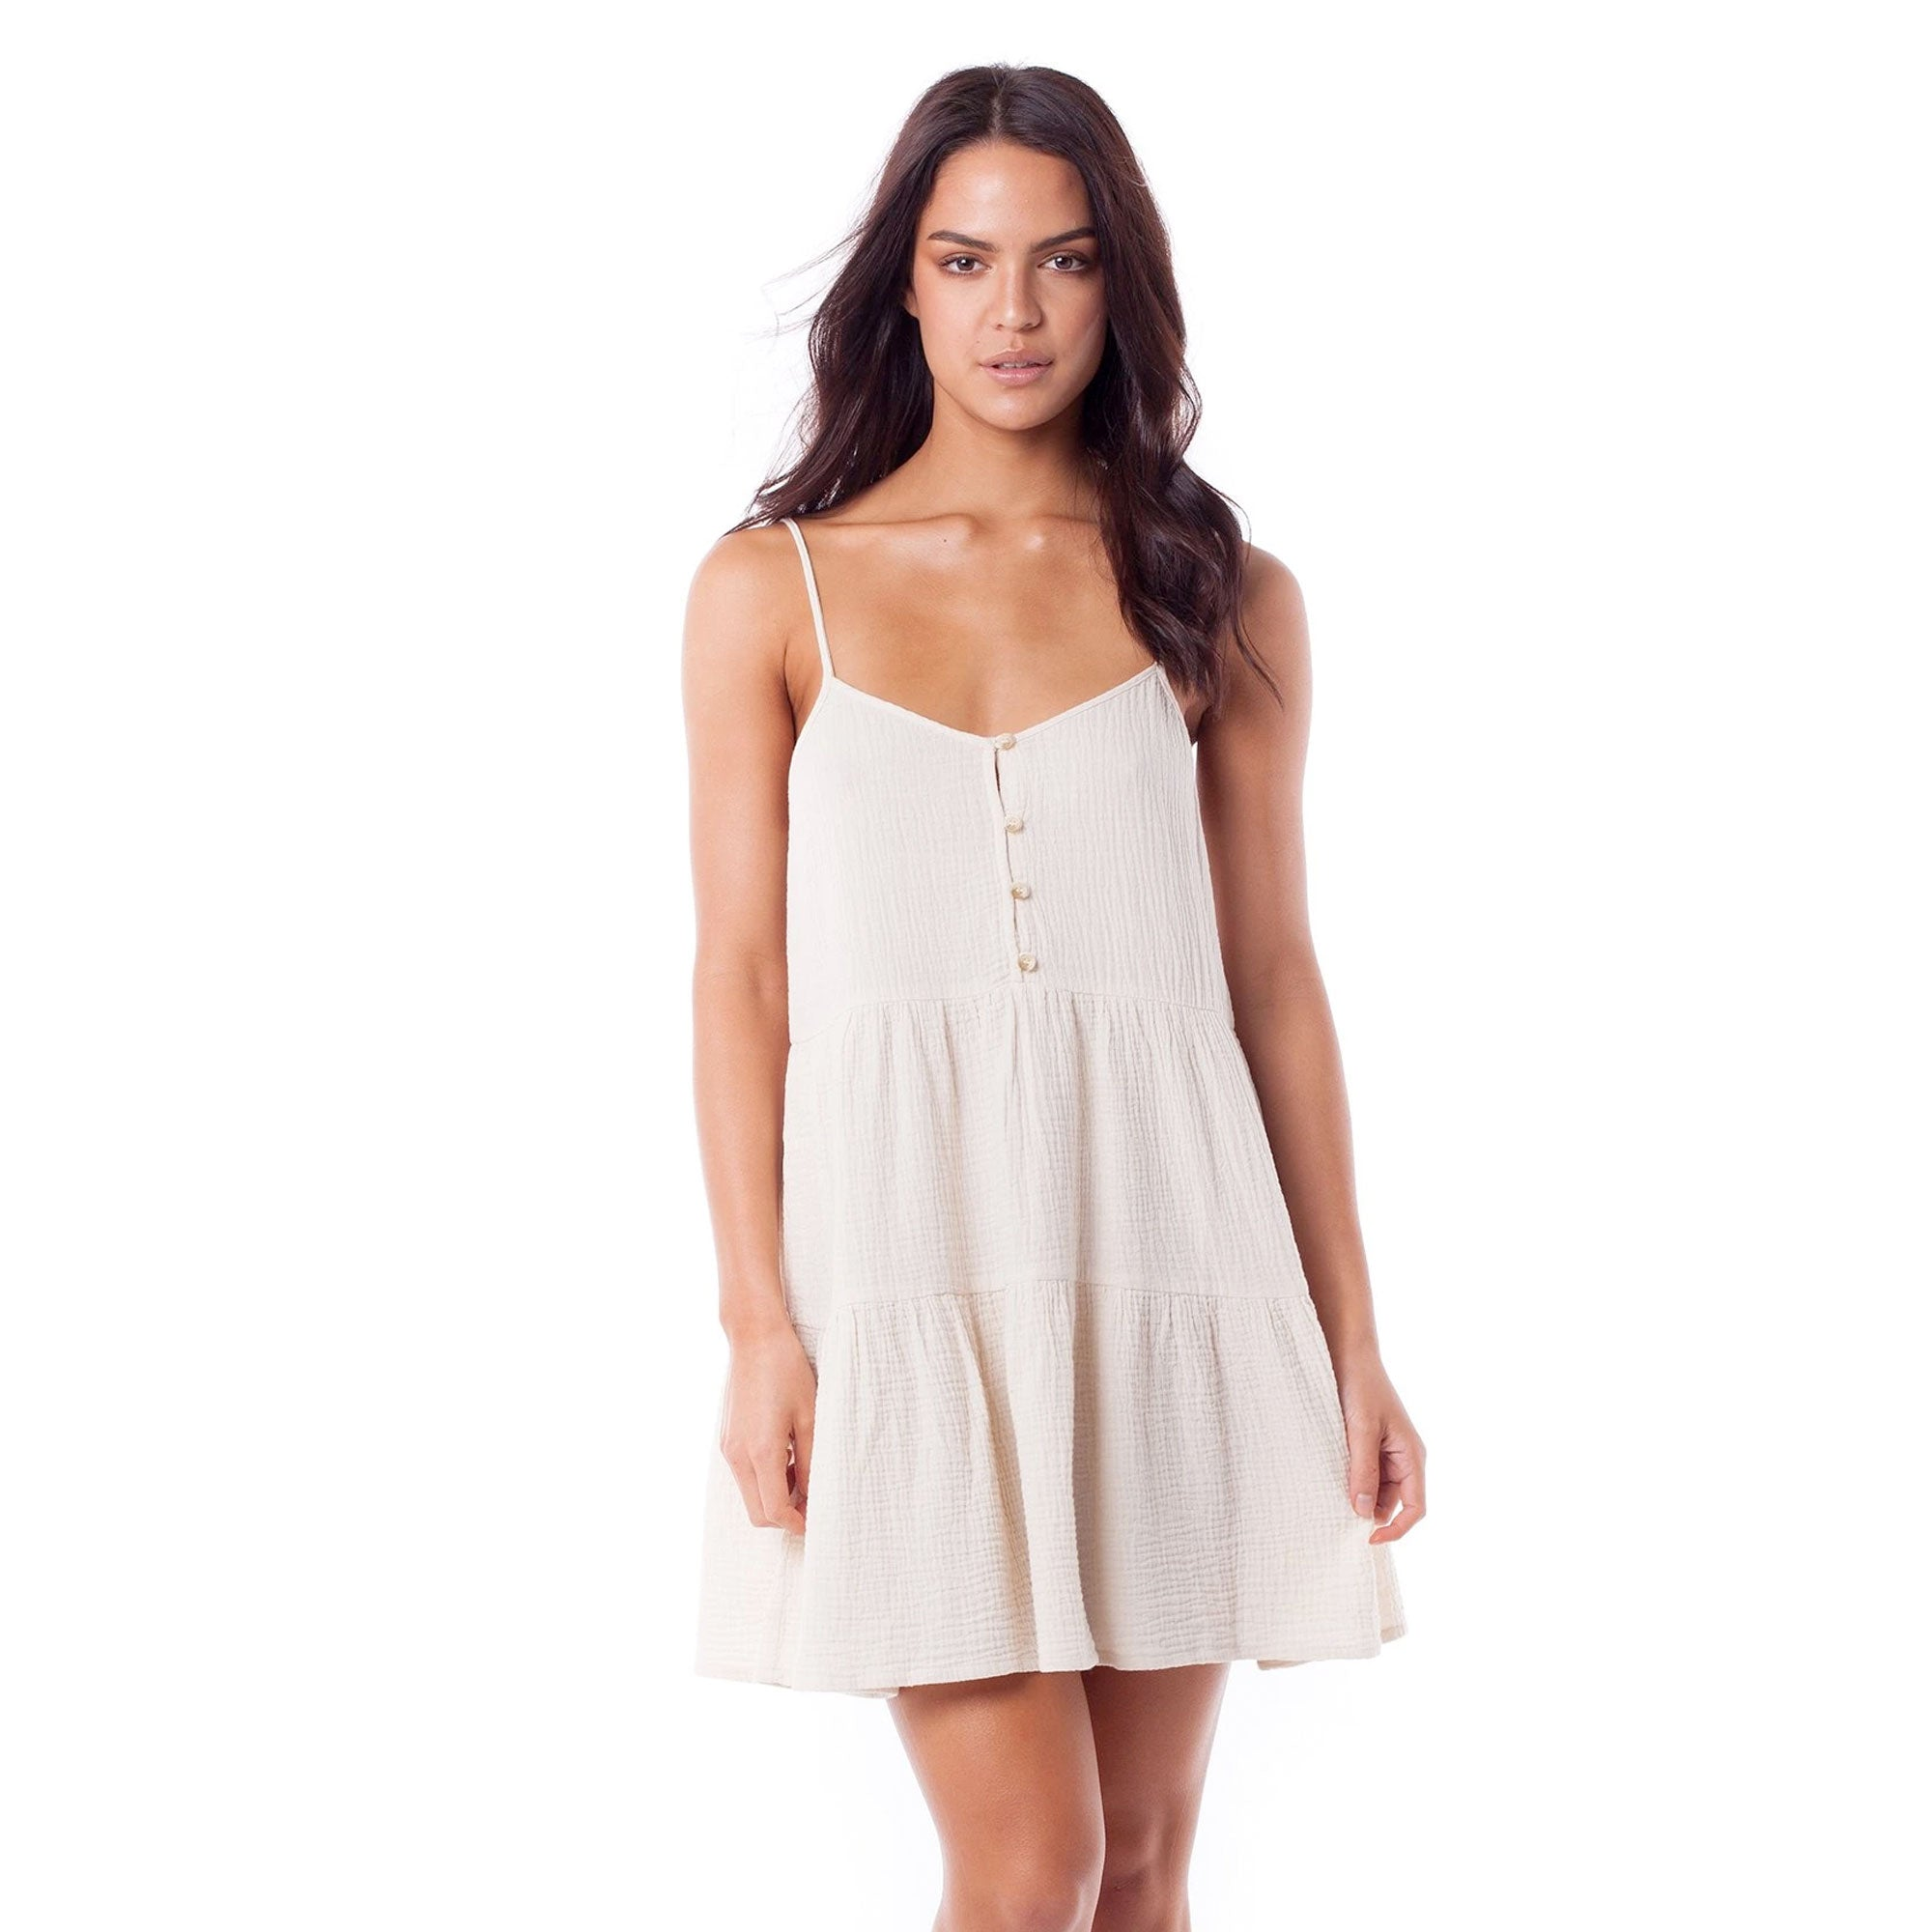 Rhythm Camille Women's Dress